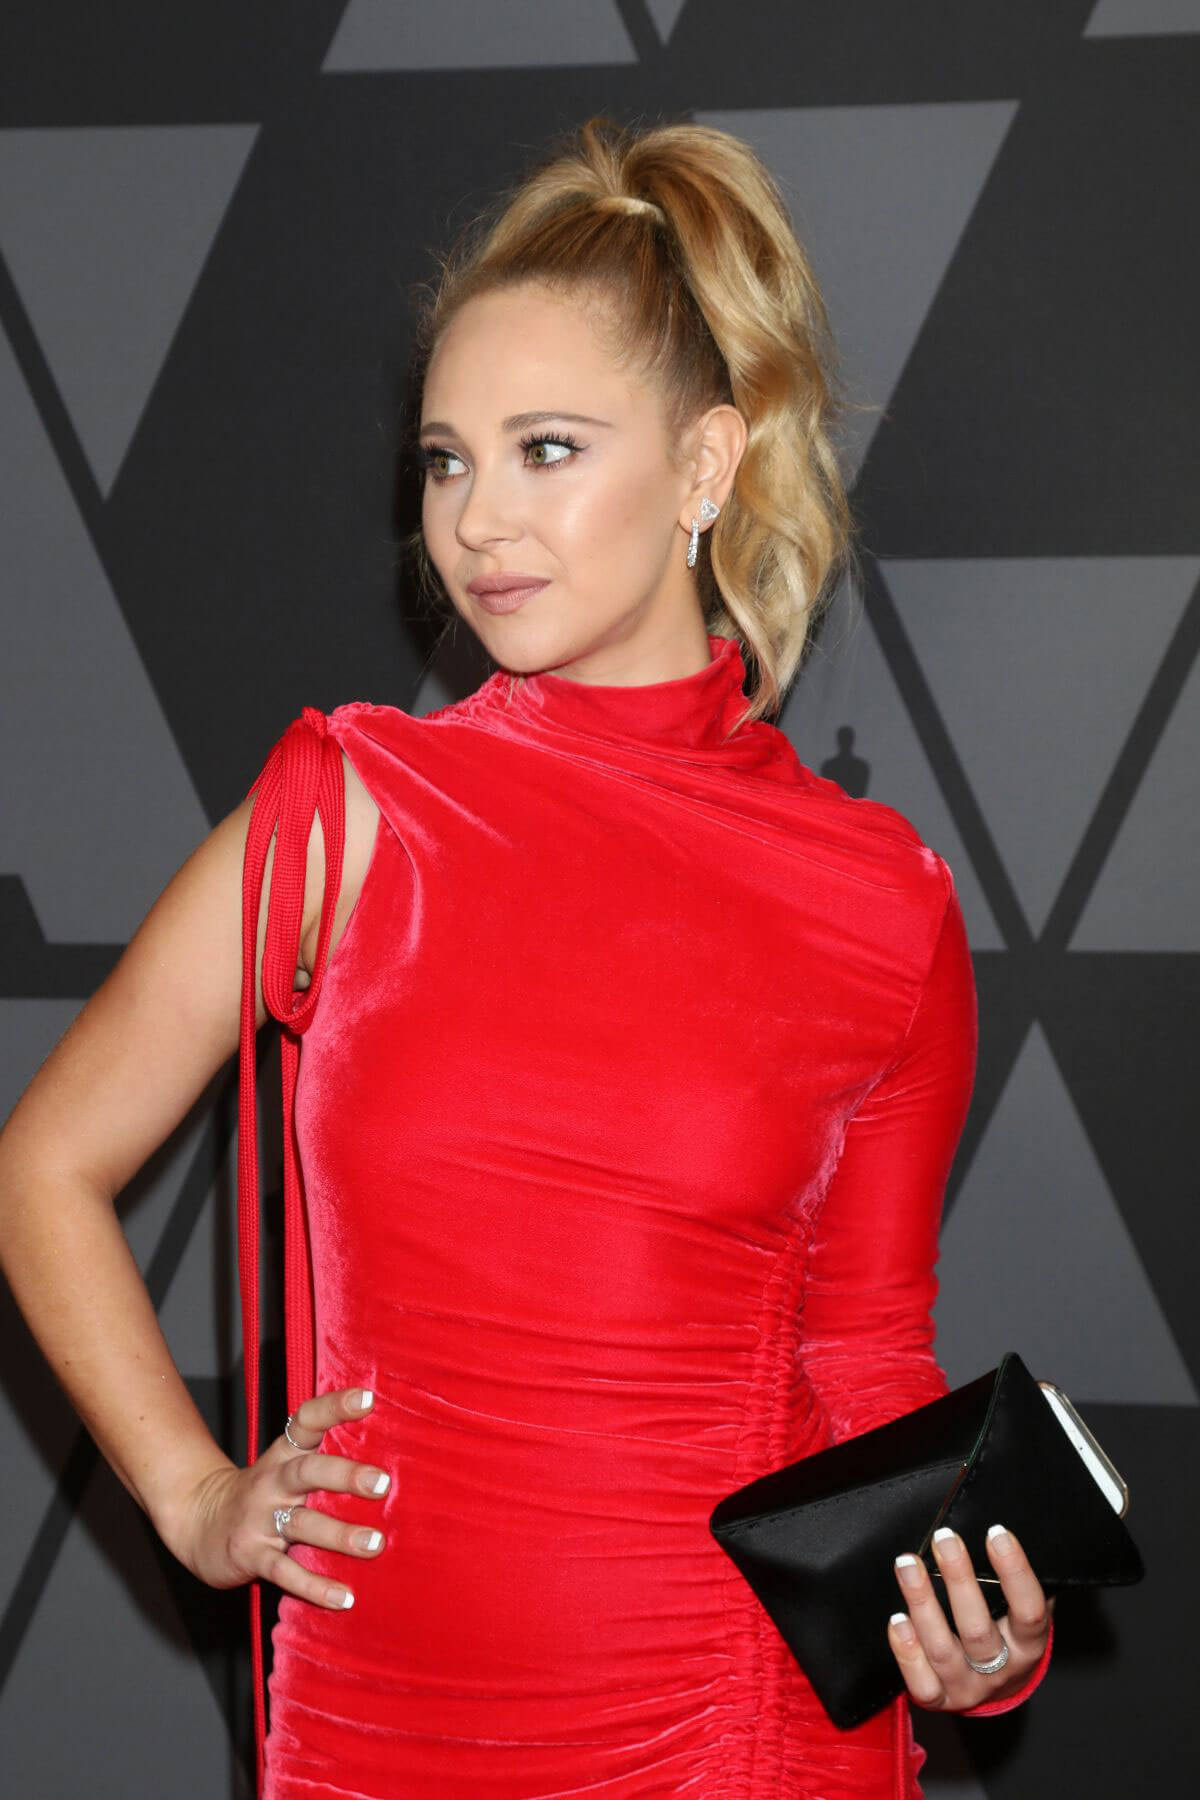 Juno Temple Stills at AMPAS 9th Annual Governors Awards in Hollywood